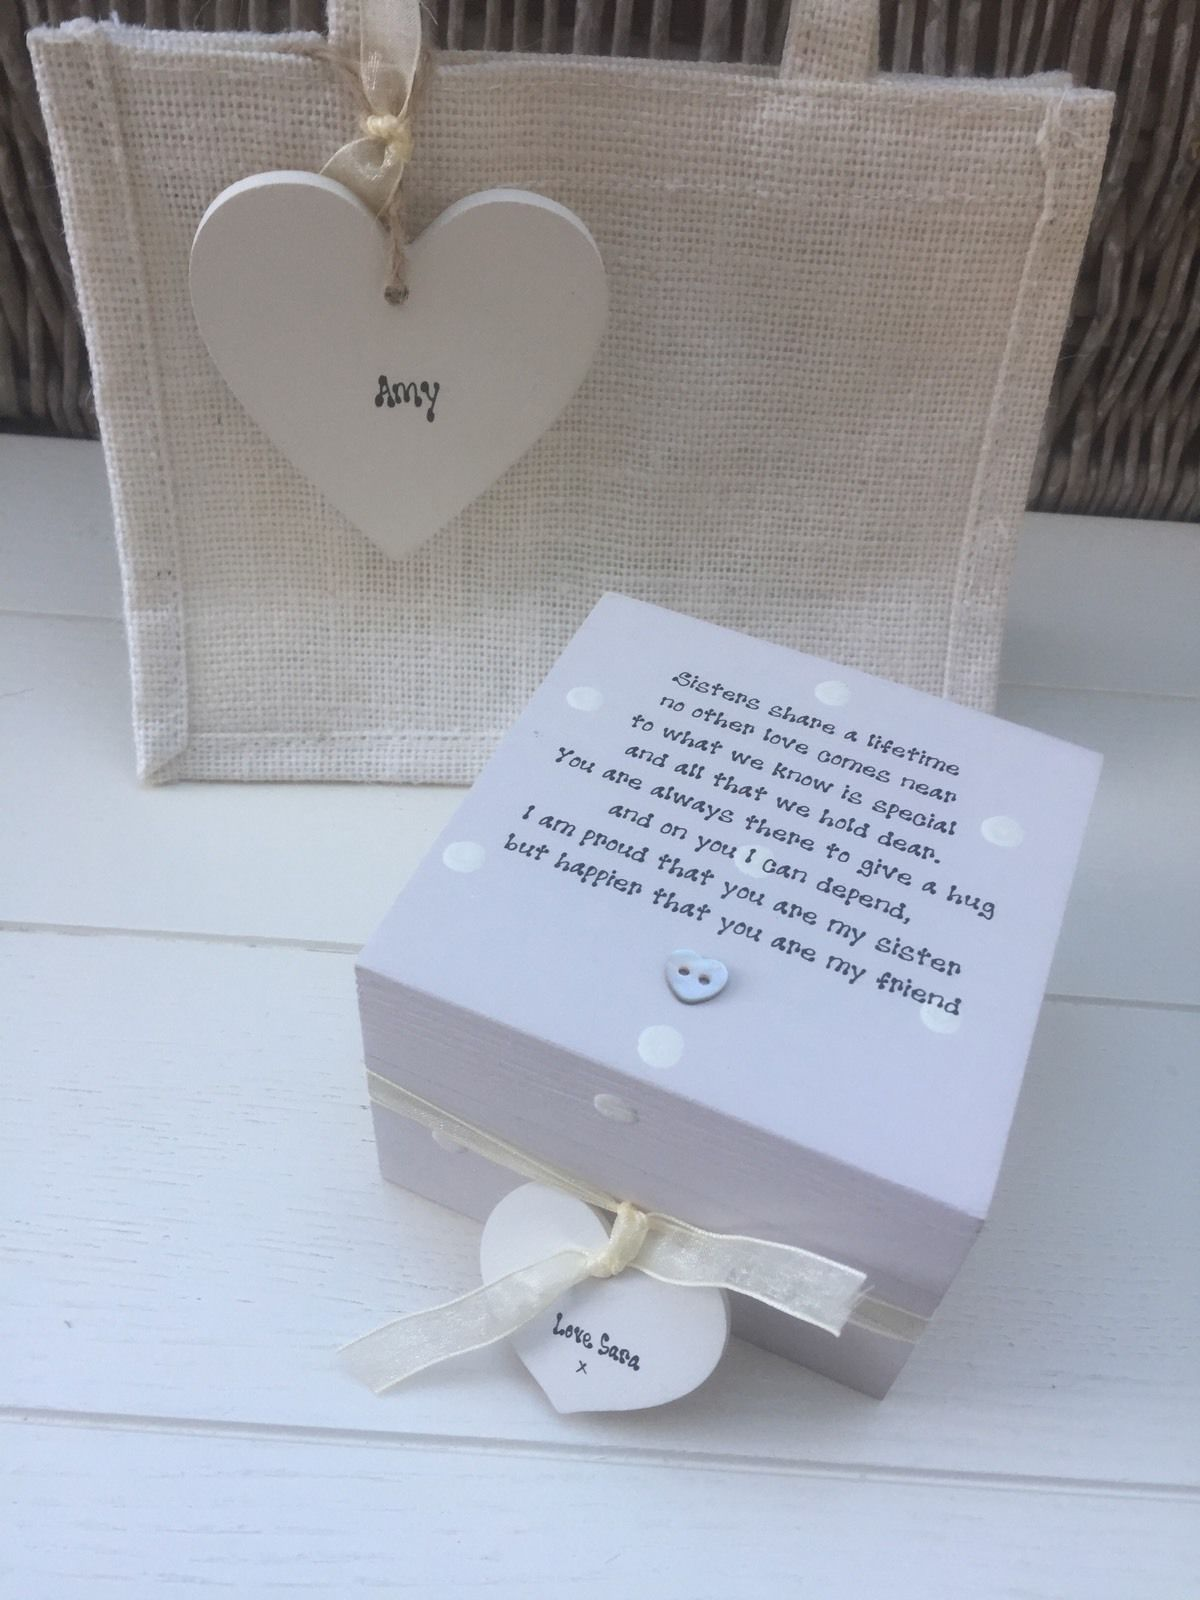 Wedding Gift Amount Sister : ... Personalised Chic Special Sister Gift Set Sentimental Present Birthday